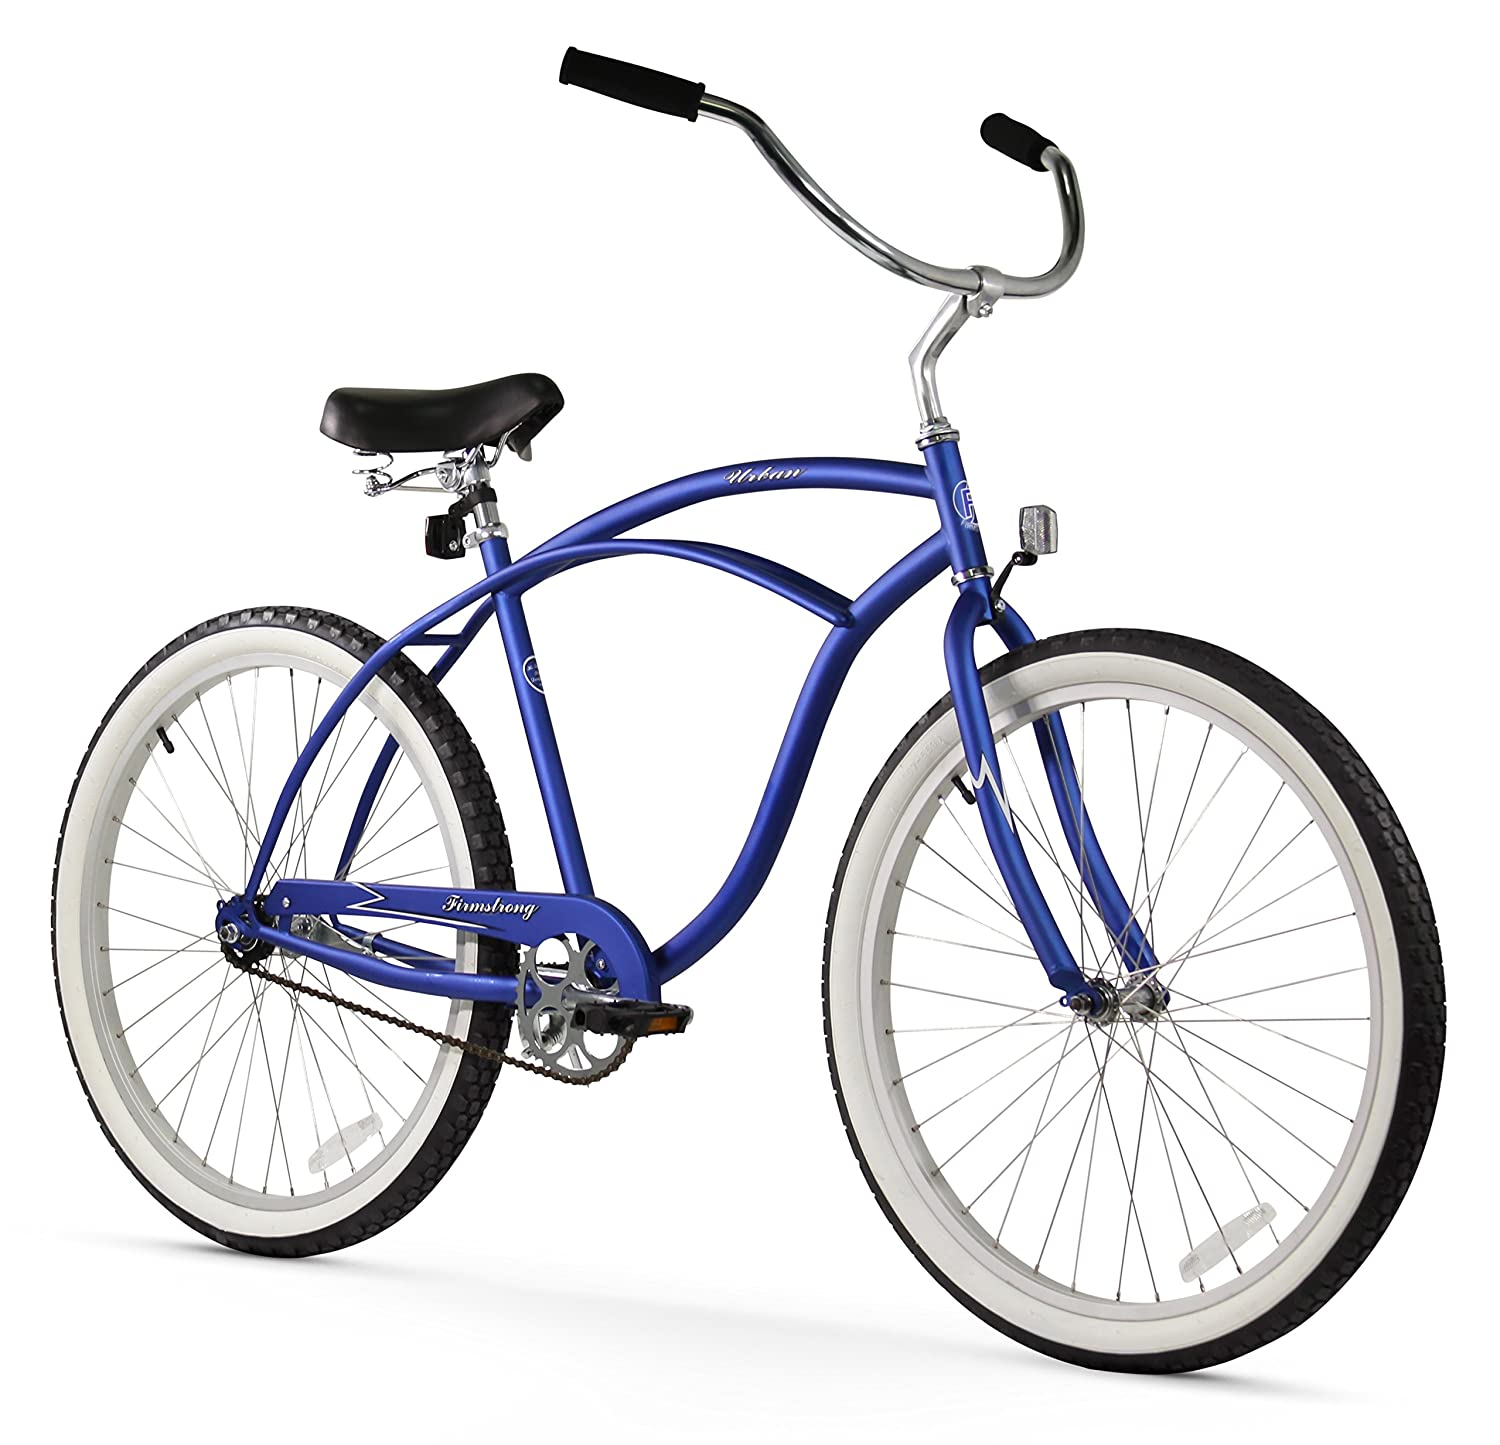 Firmstrong Urban Man Single Speed Beach Cruiser Bicycle, 24', Royal Blue 24 15253